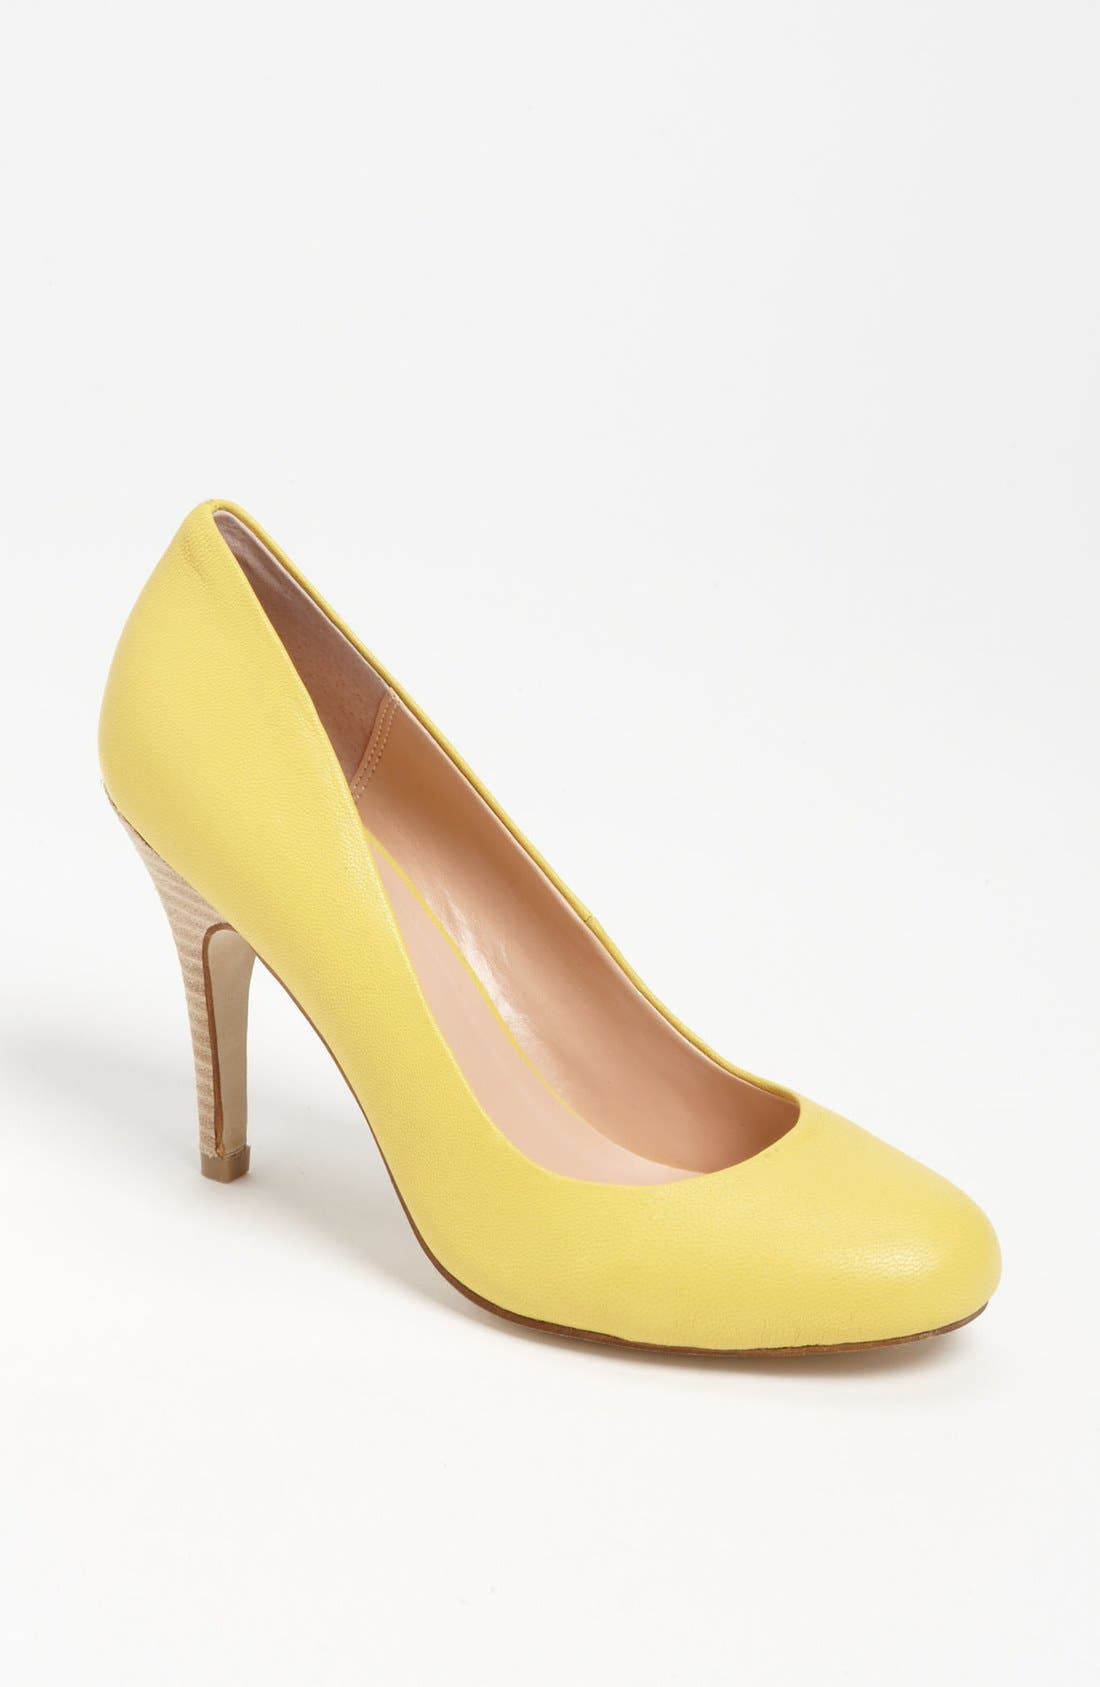 Main Image - Sole Society 'Marina' Pump